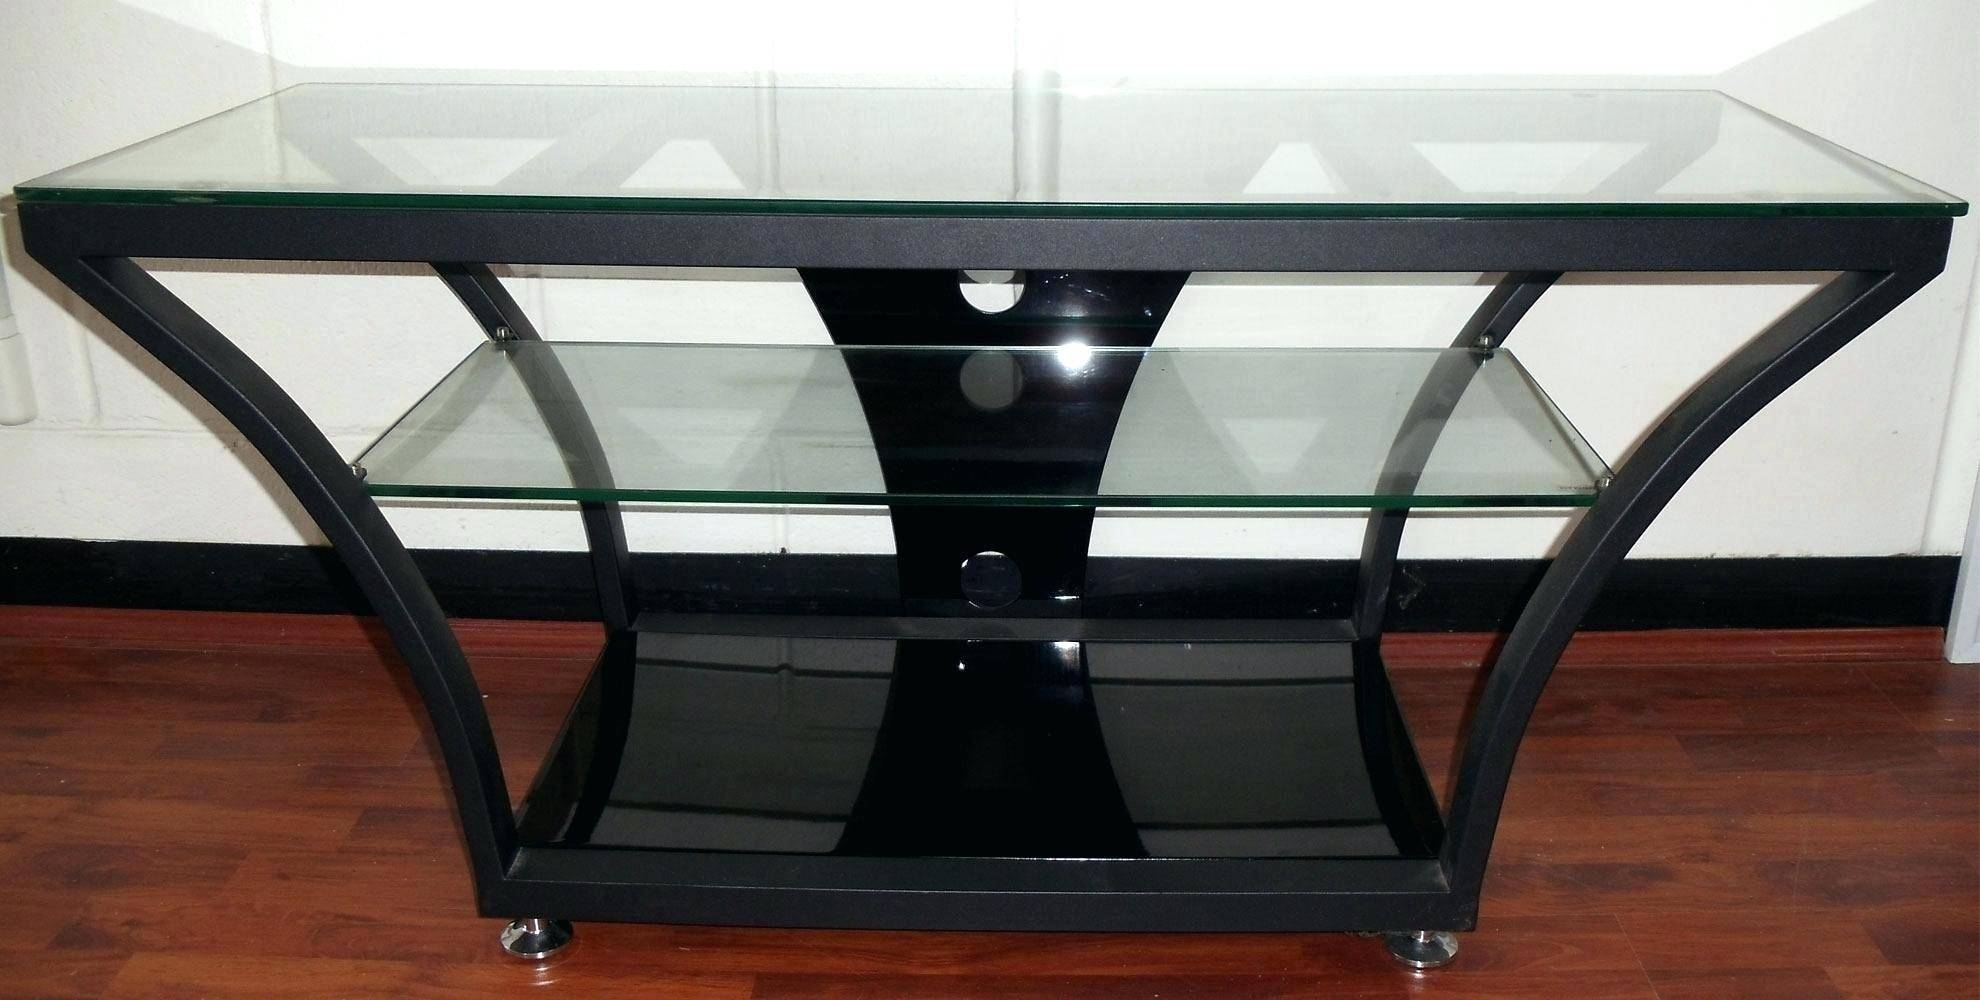 2020 Popular Cast Iron Tv Stands on Iron Stand Ideas  id=35659